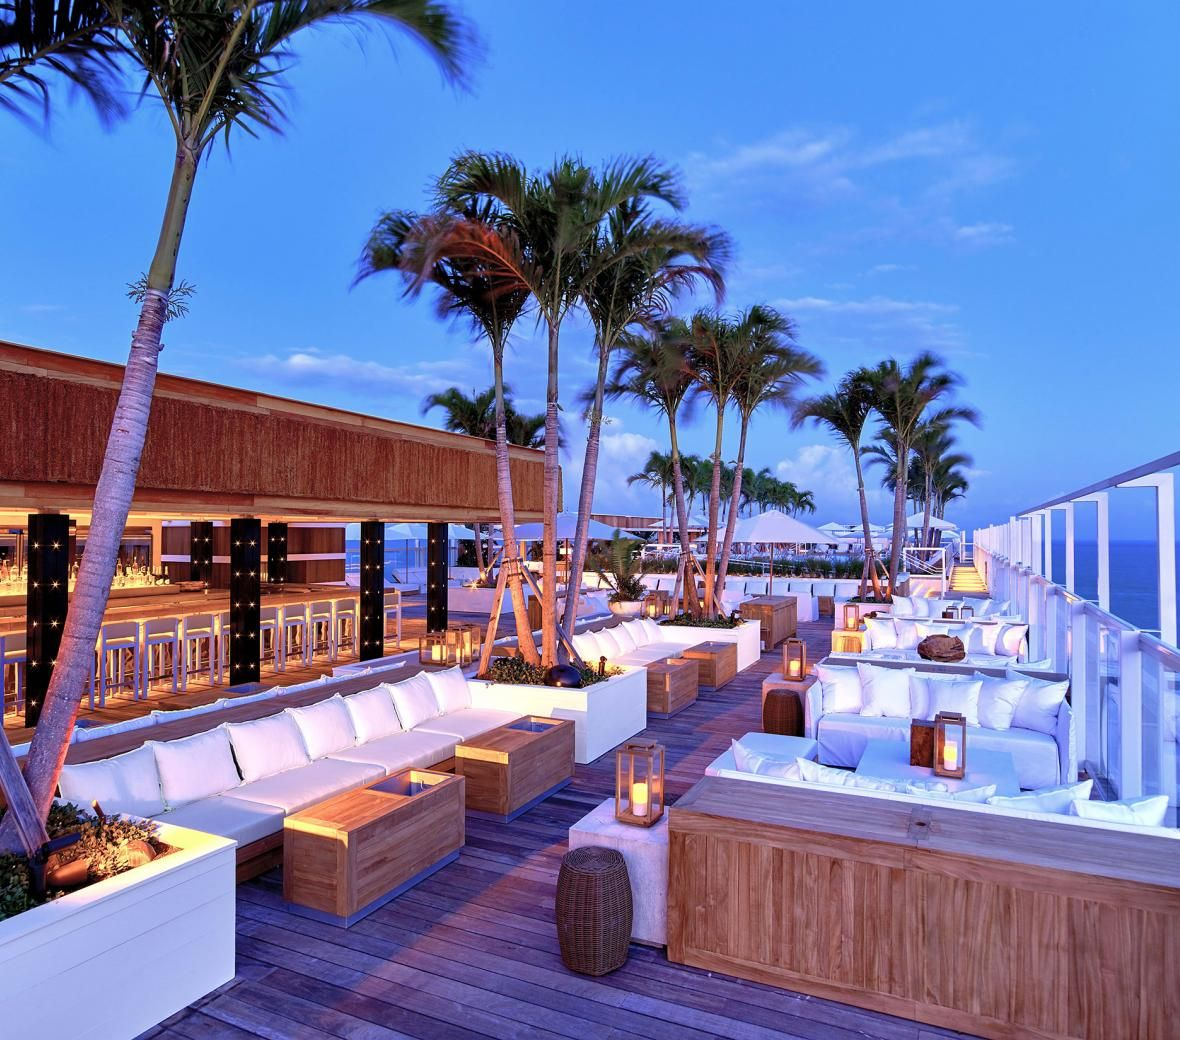 1 Hotel South Beach Gallery 1 Hotels In 2020 Best Rooftop Bars Grand Beach Hotel Rooftop Design